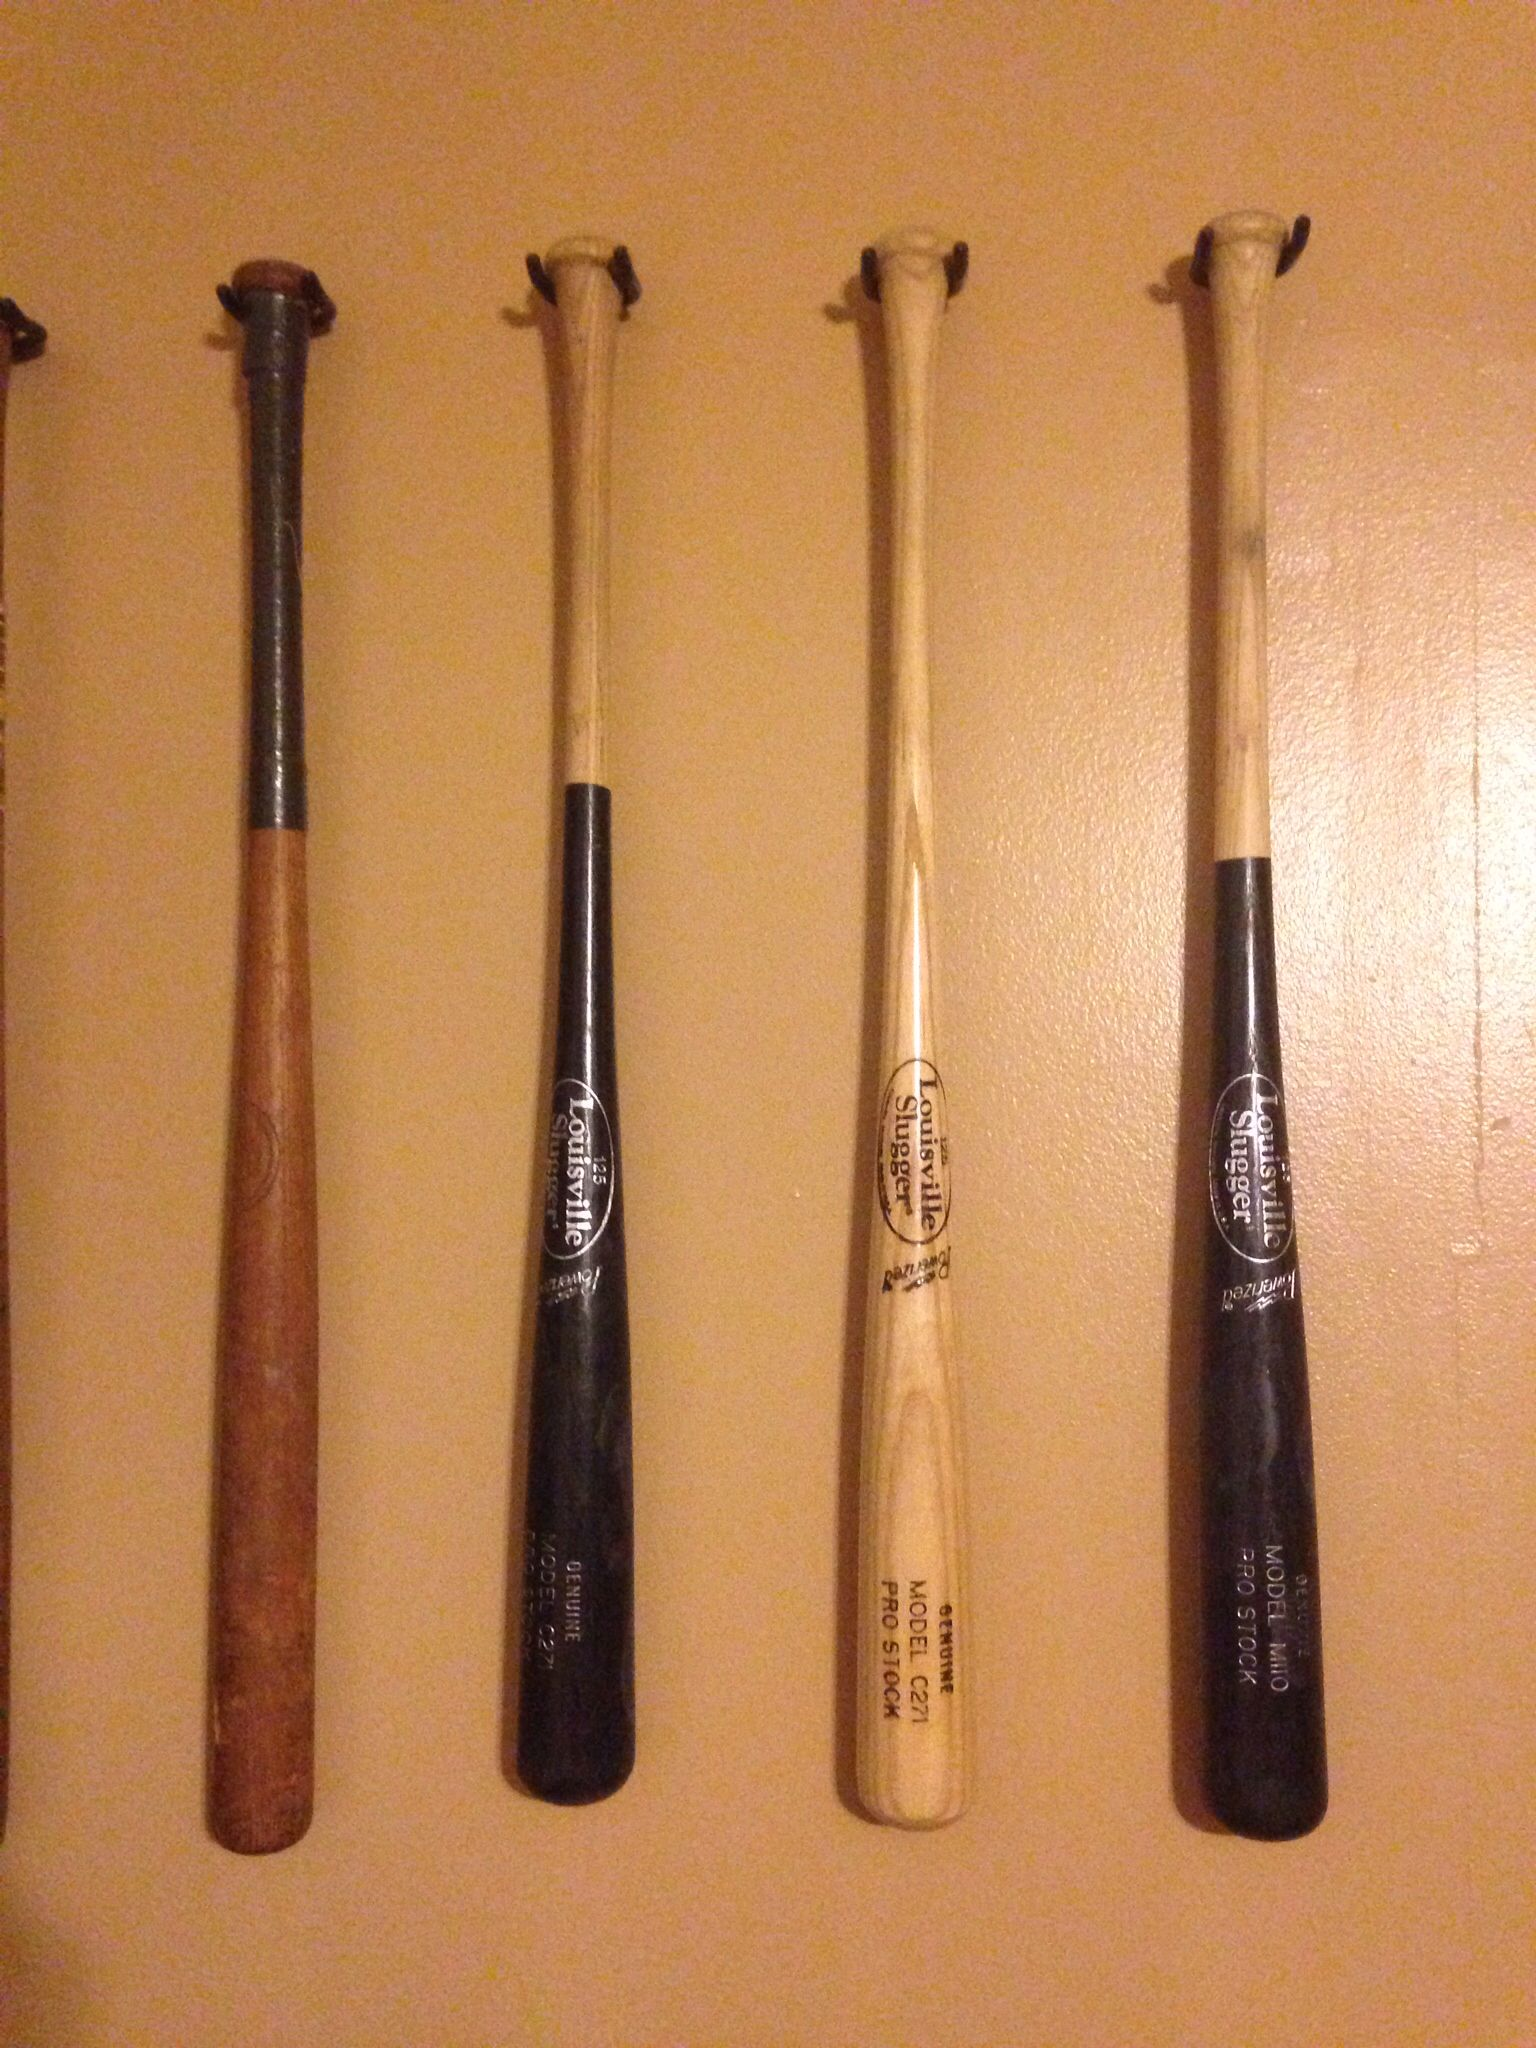 Hang Baseball Bats Using The In